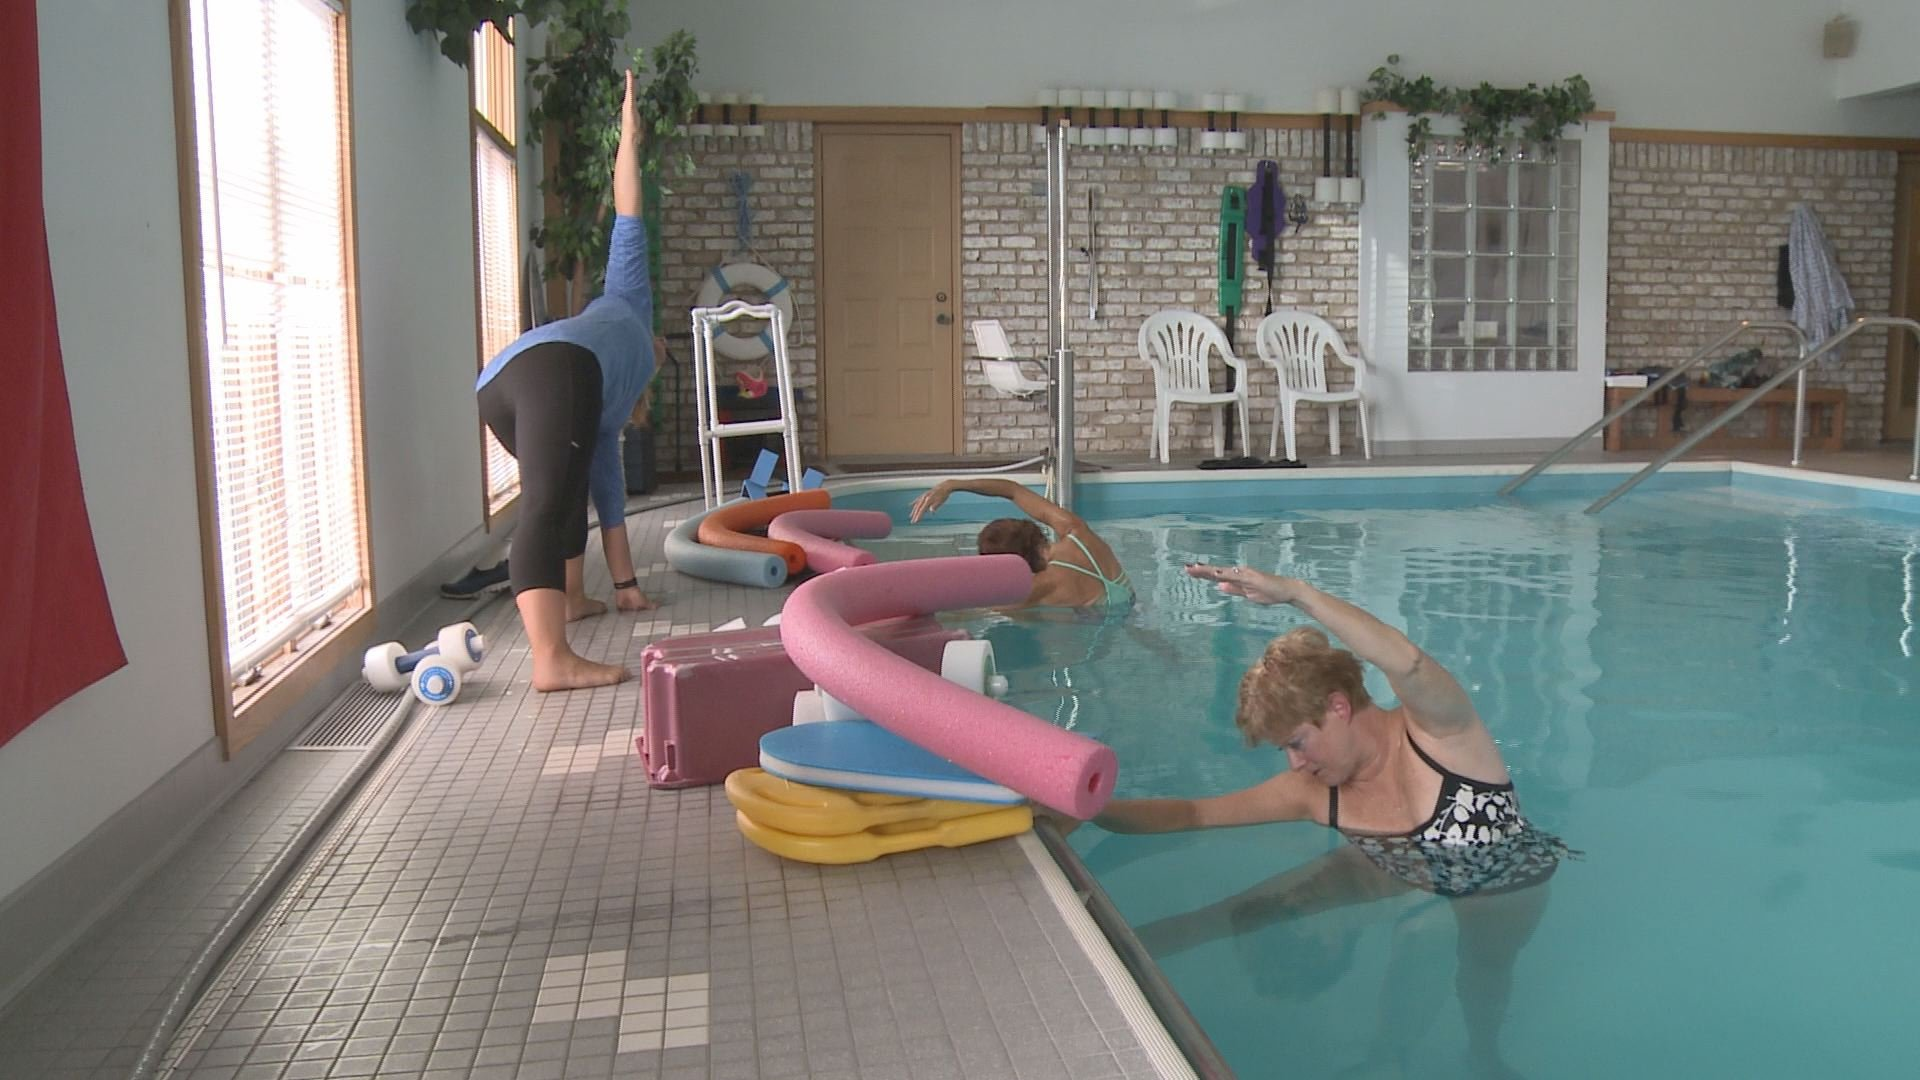 Exercising In Water Can Provide Relief To Joints News Weather Sports For Youngstown